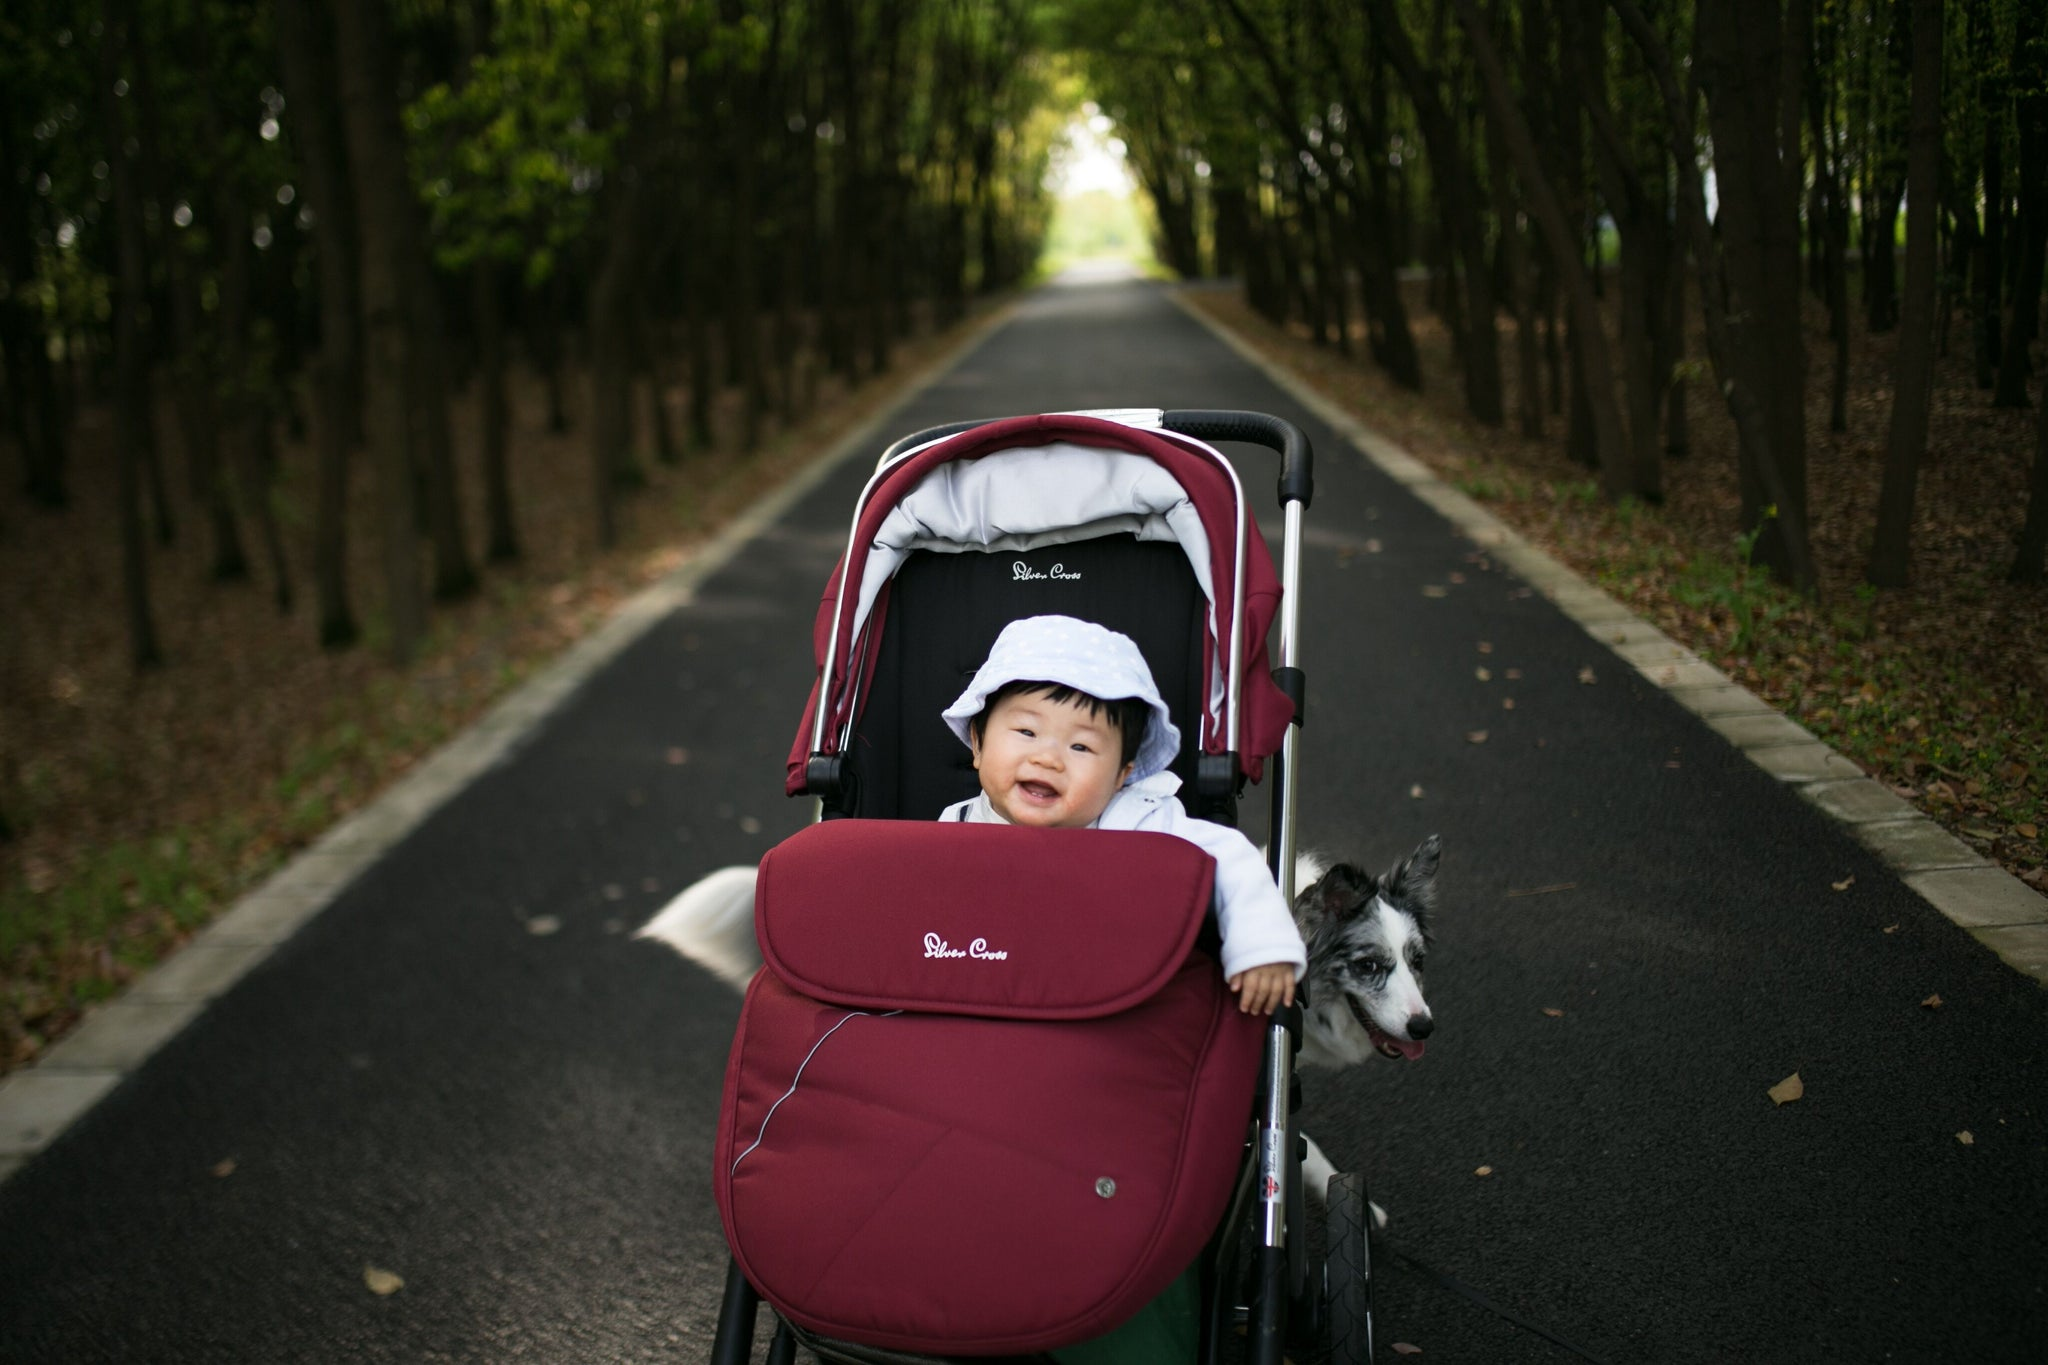 Pram Safety & Buying Guide